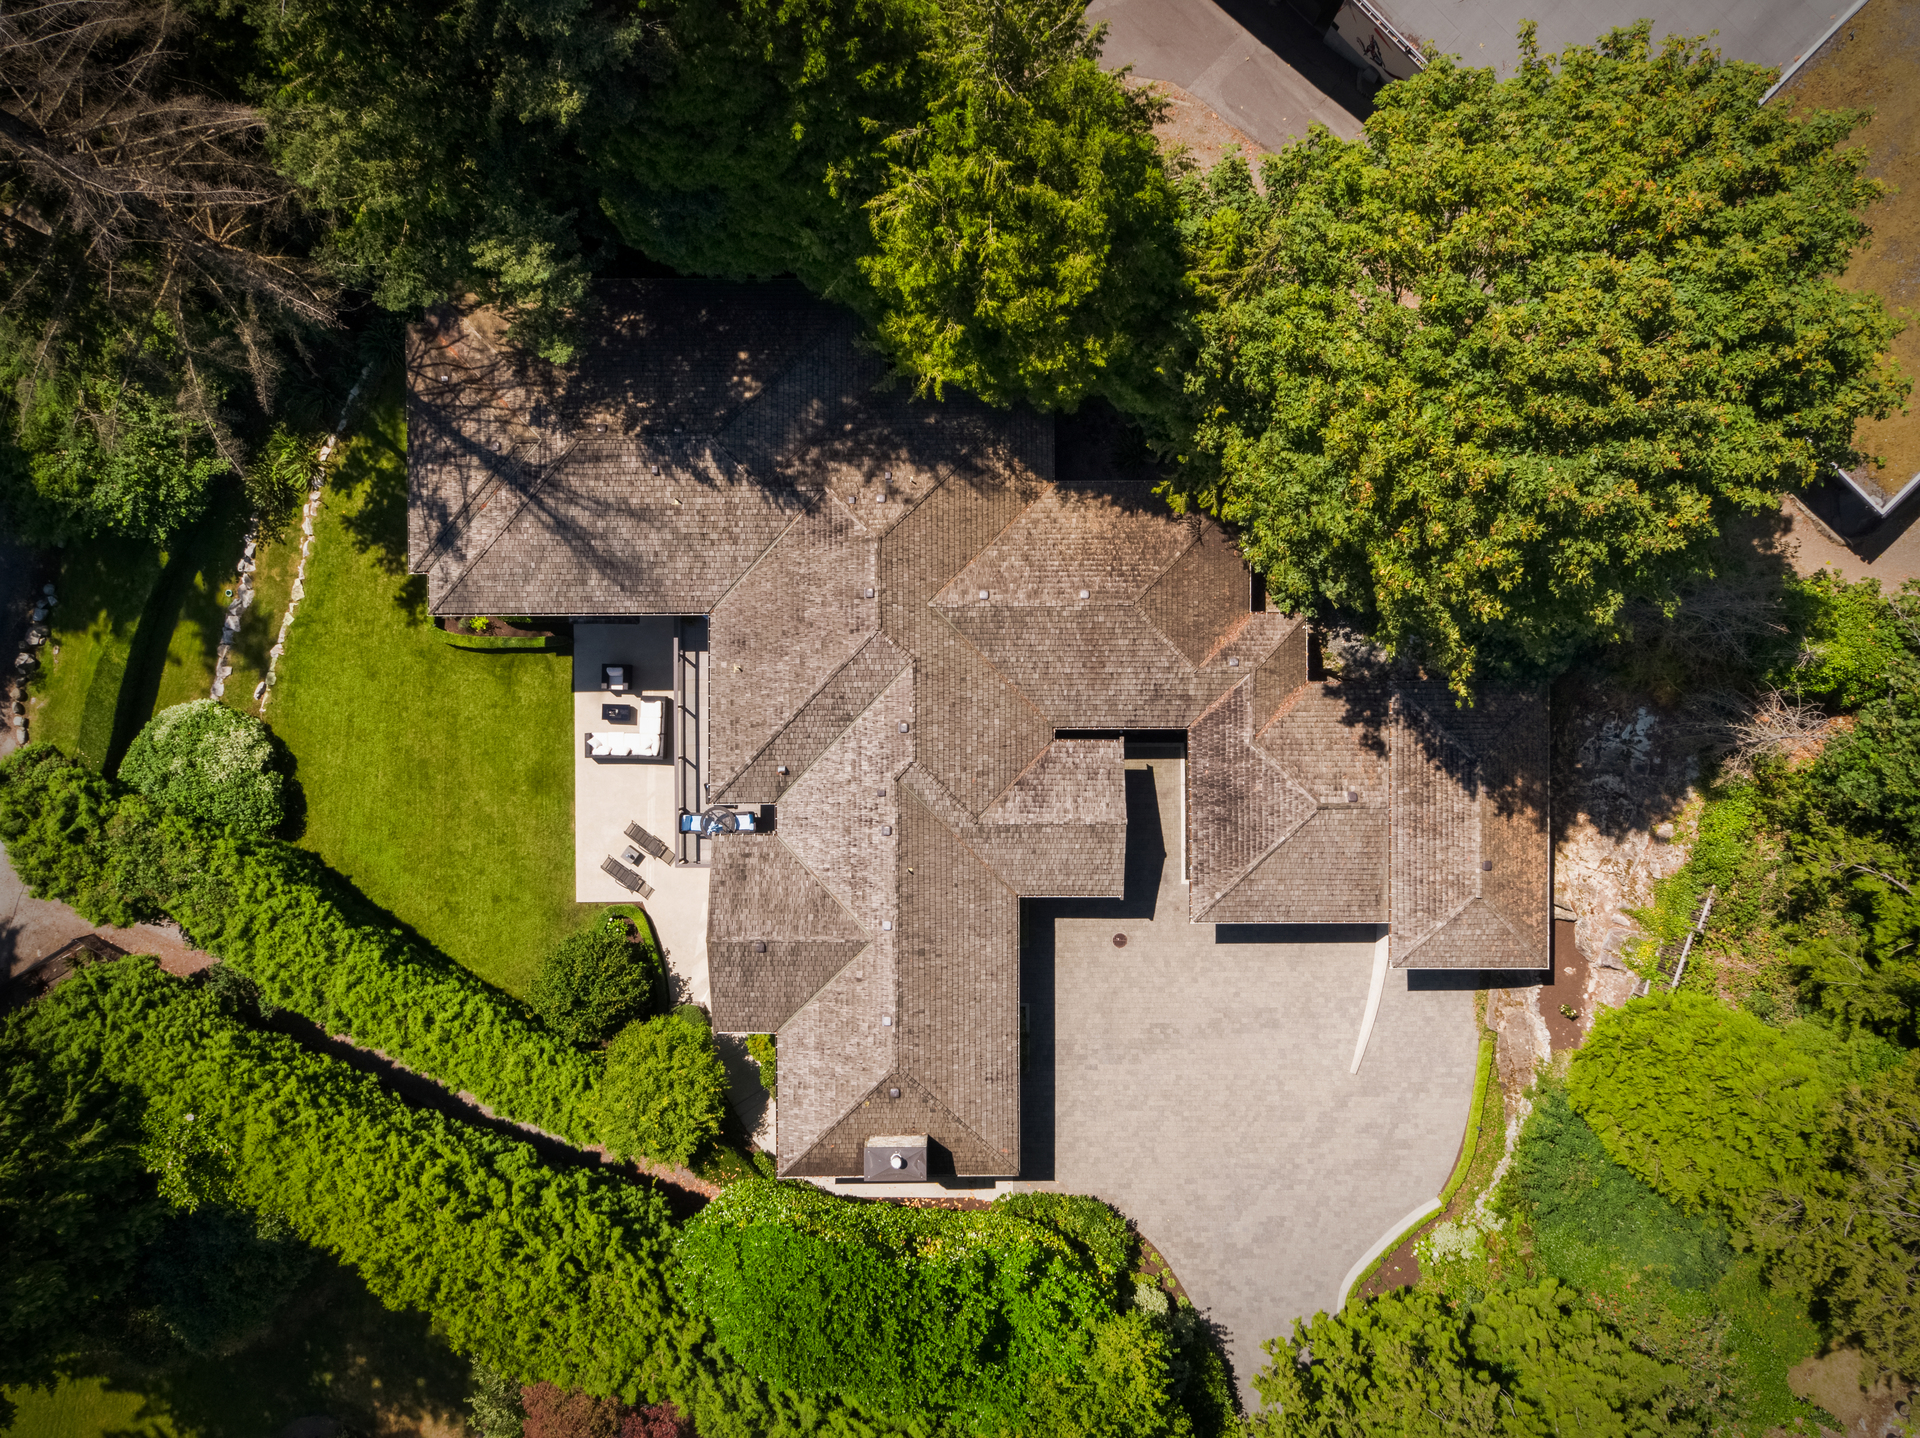 3082-spencer-place-24 at 3082 Spencer Place, Altamont, West Vancouver